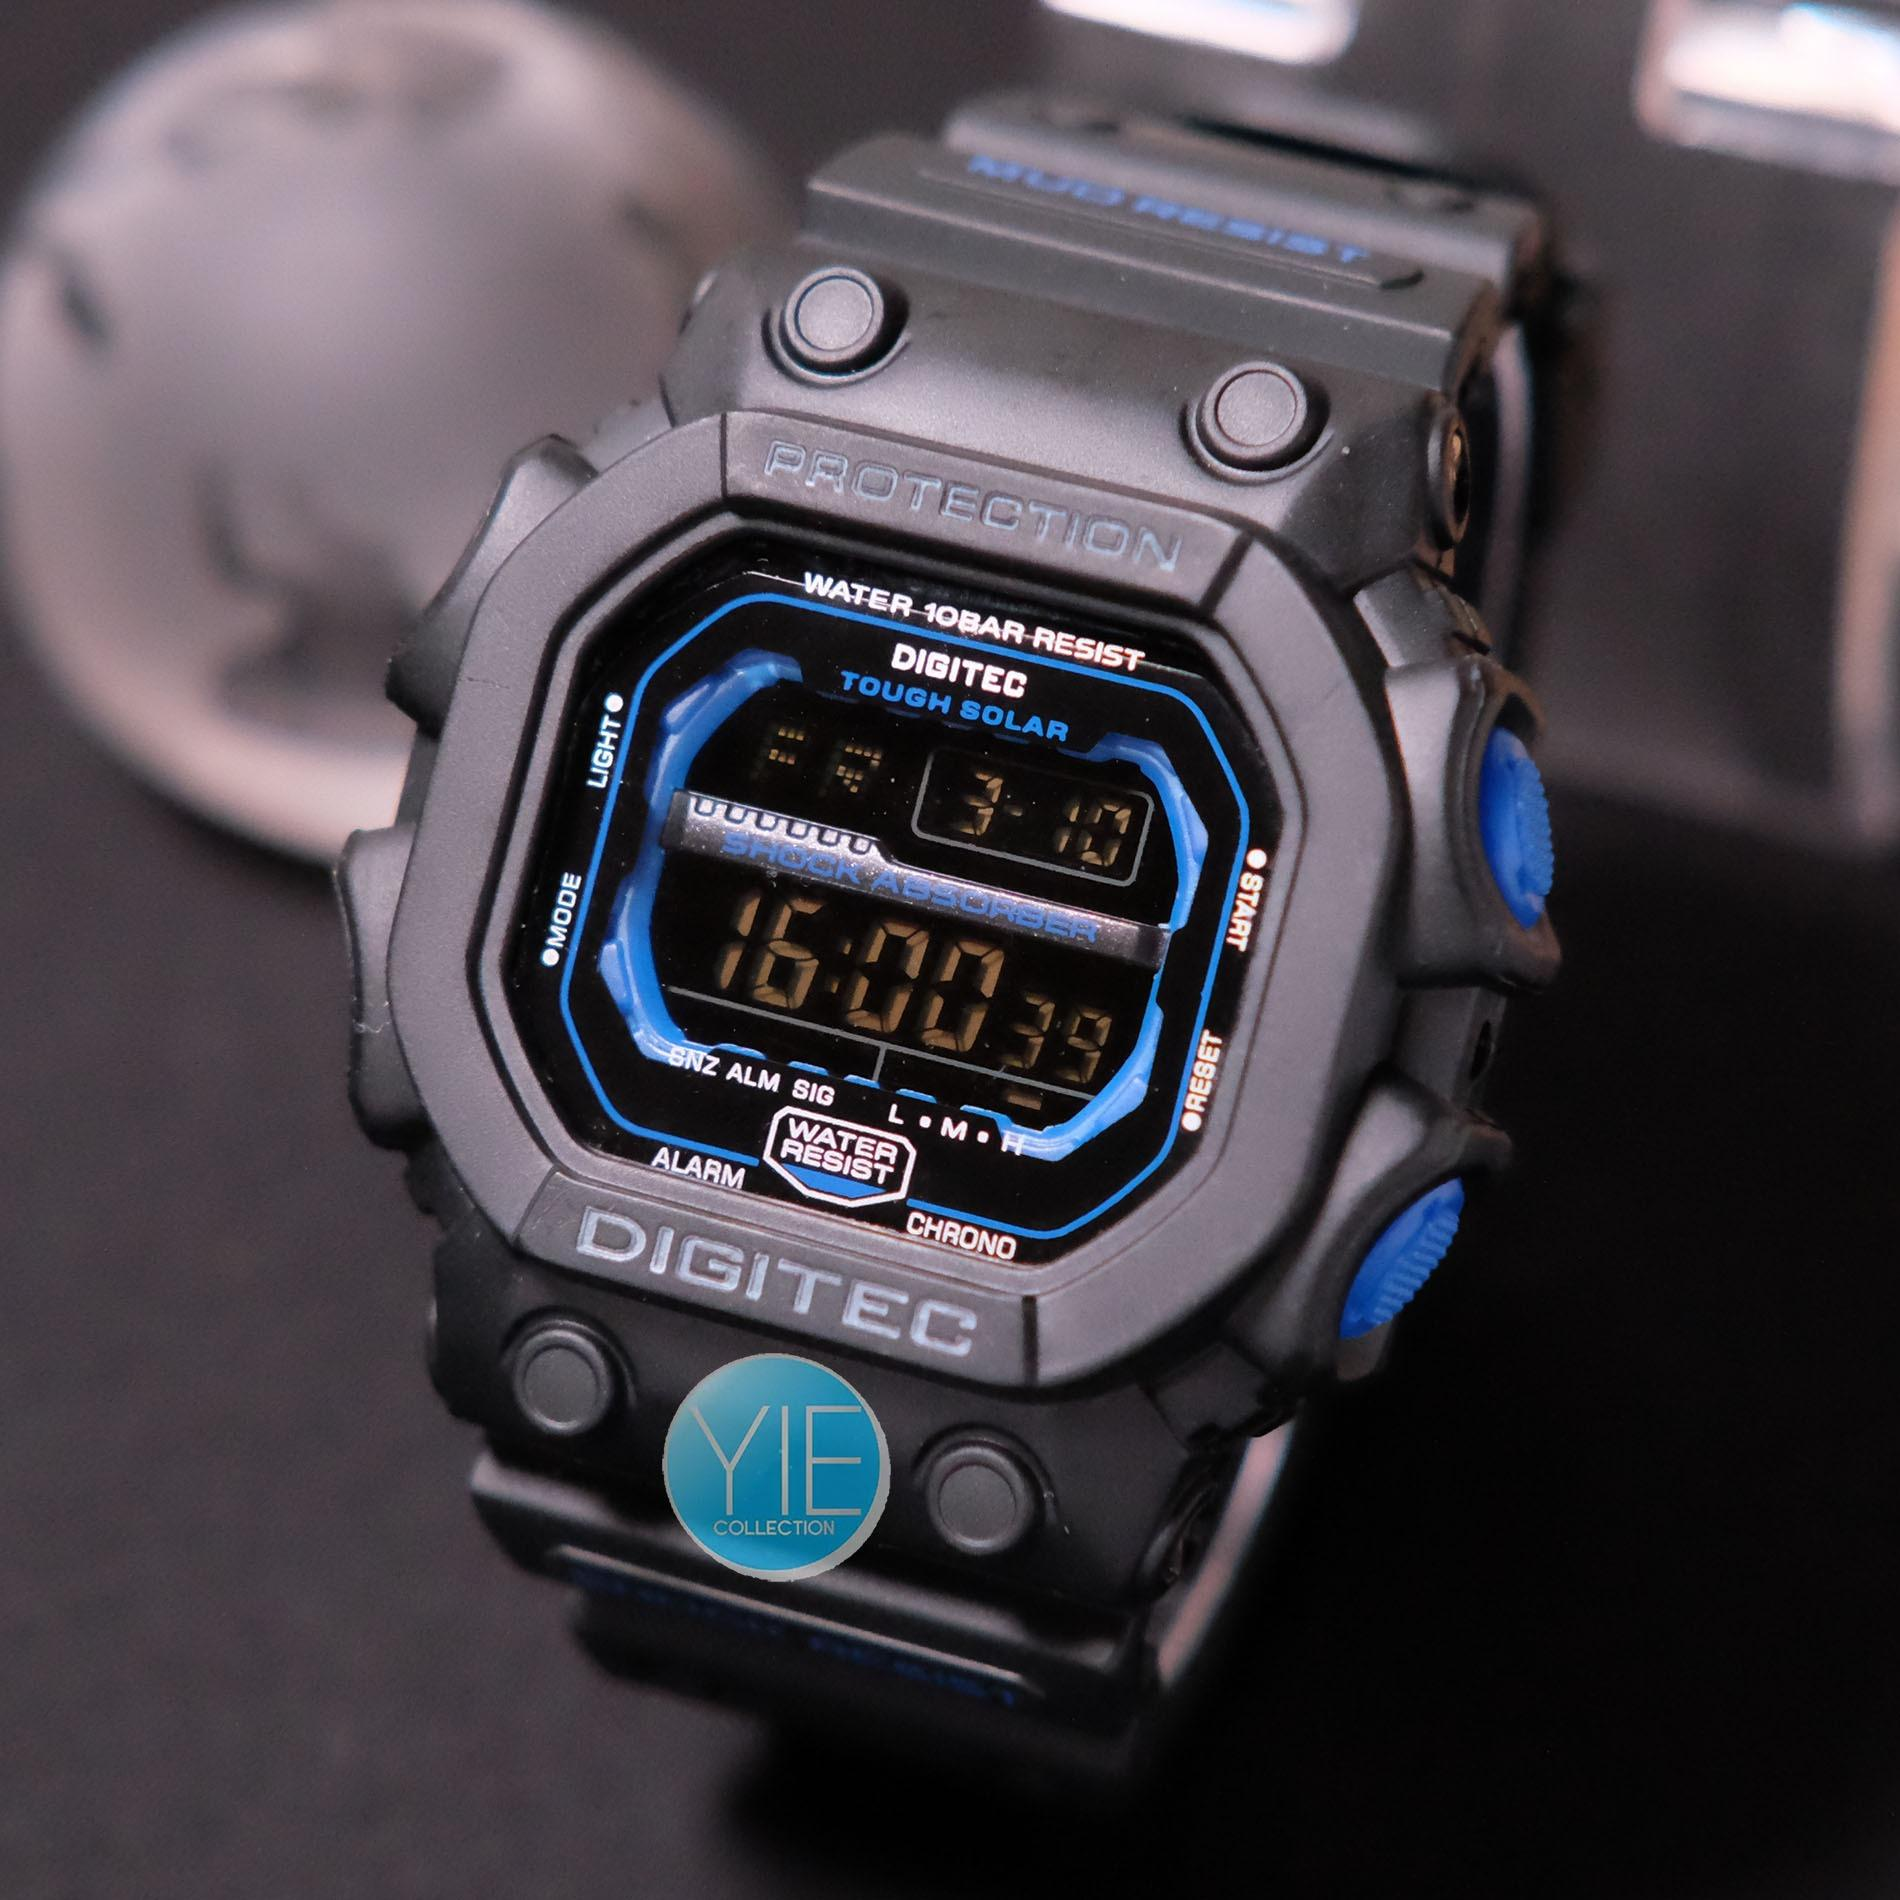 Jual Digitec Jam Tangan Sport Army Pria Dg 2012 T Black Anti Air Original Hitam List Biru